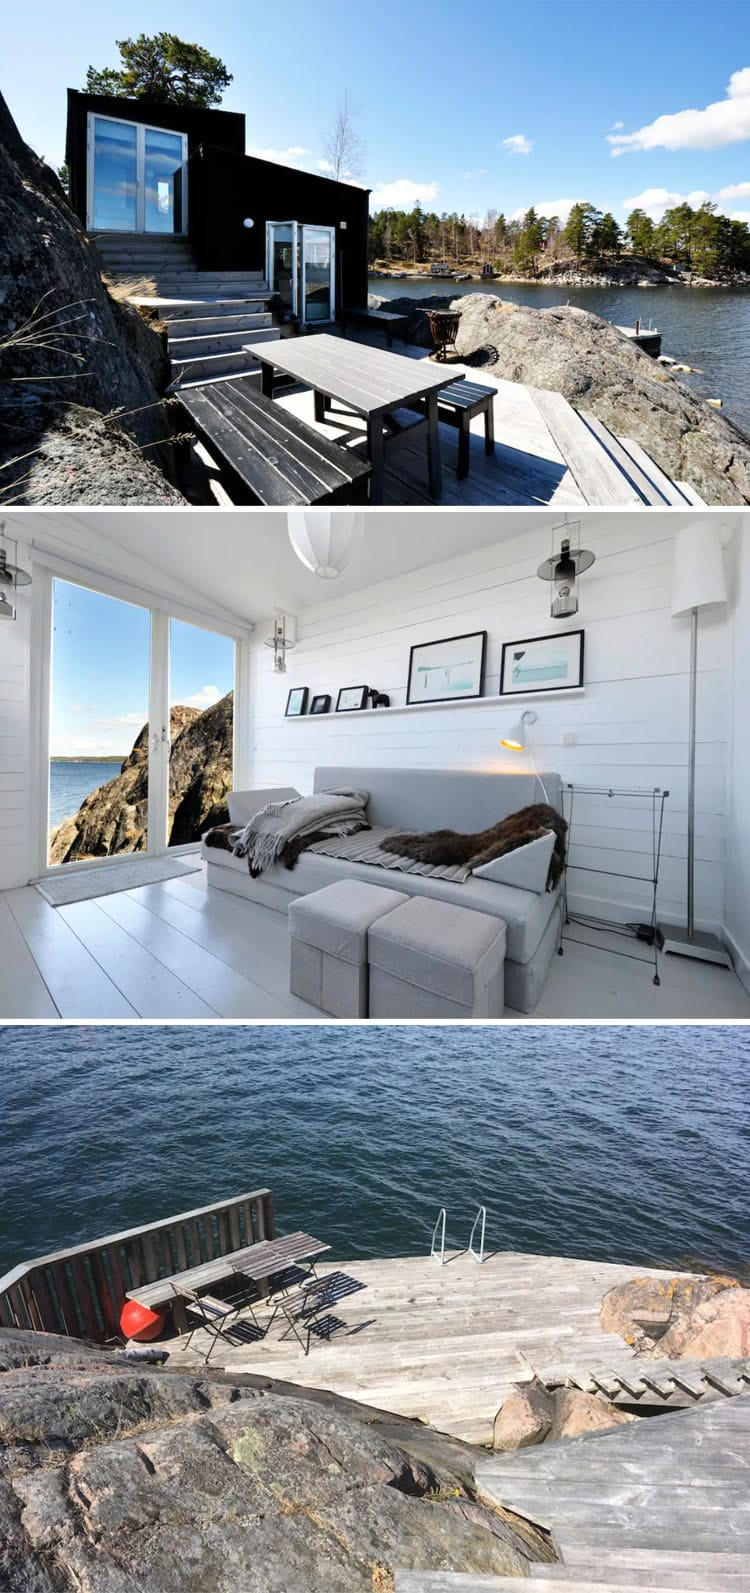 The Most Beautiful and Epic Airbnbs Worth Traveling For in 2019 | Stockholm seaside Airbnb | Epic Airbnb rentals | Most beautiful Airbnb rentals around the world | Coolest Airbnbs around the globe | Unique Airbnbs | Best Airbnbs to rent in 2019 | Airbnb design | Airbnb tips | Airbnb Ideas